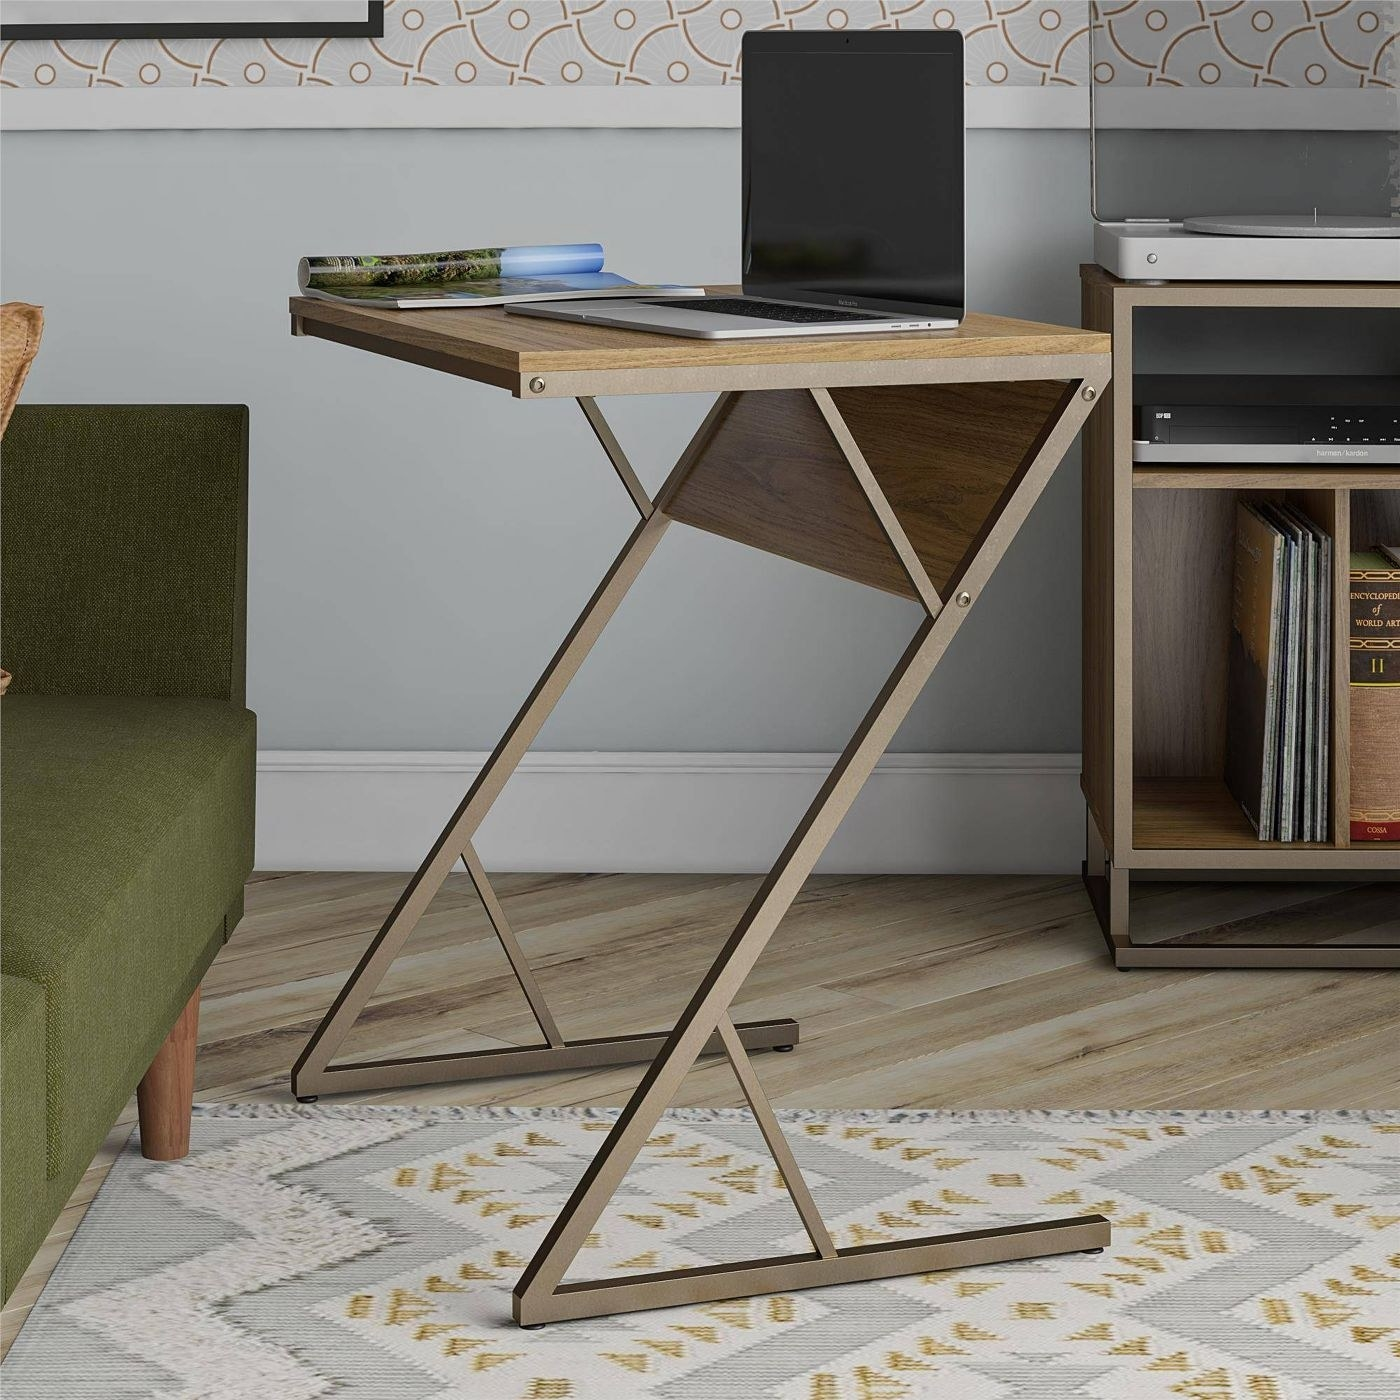 wooden laptop desk with a golden base